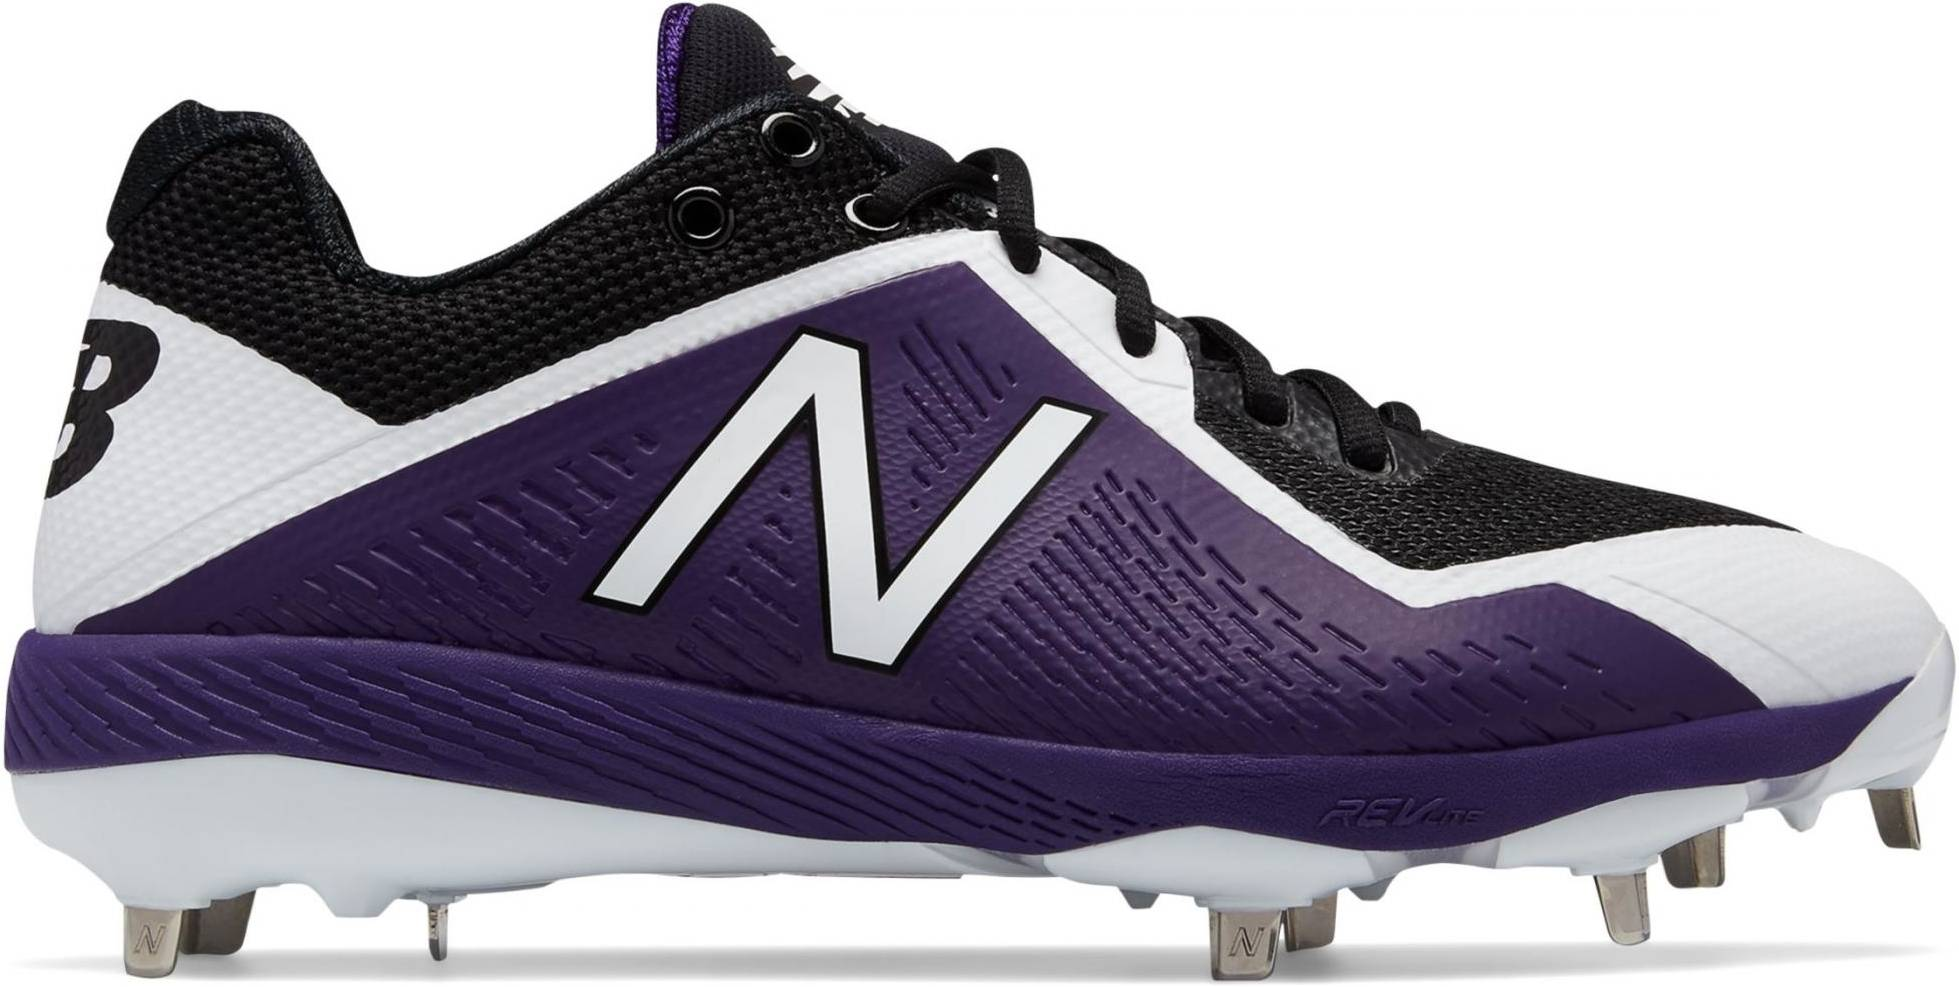 Only $20 + Review of New Balance 4040v4